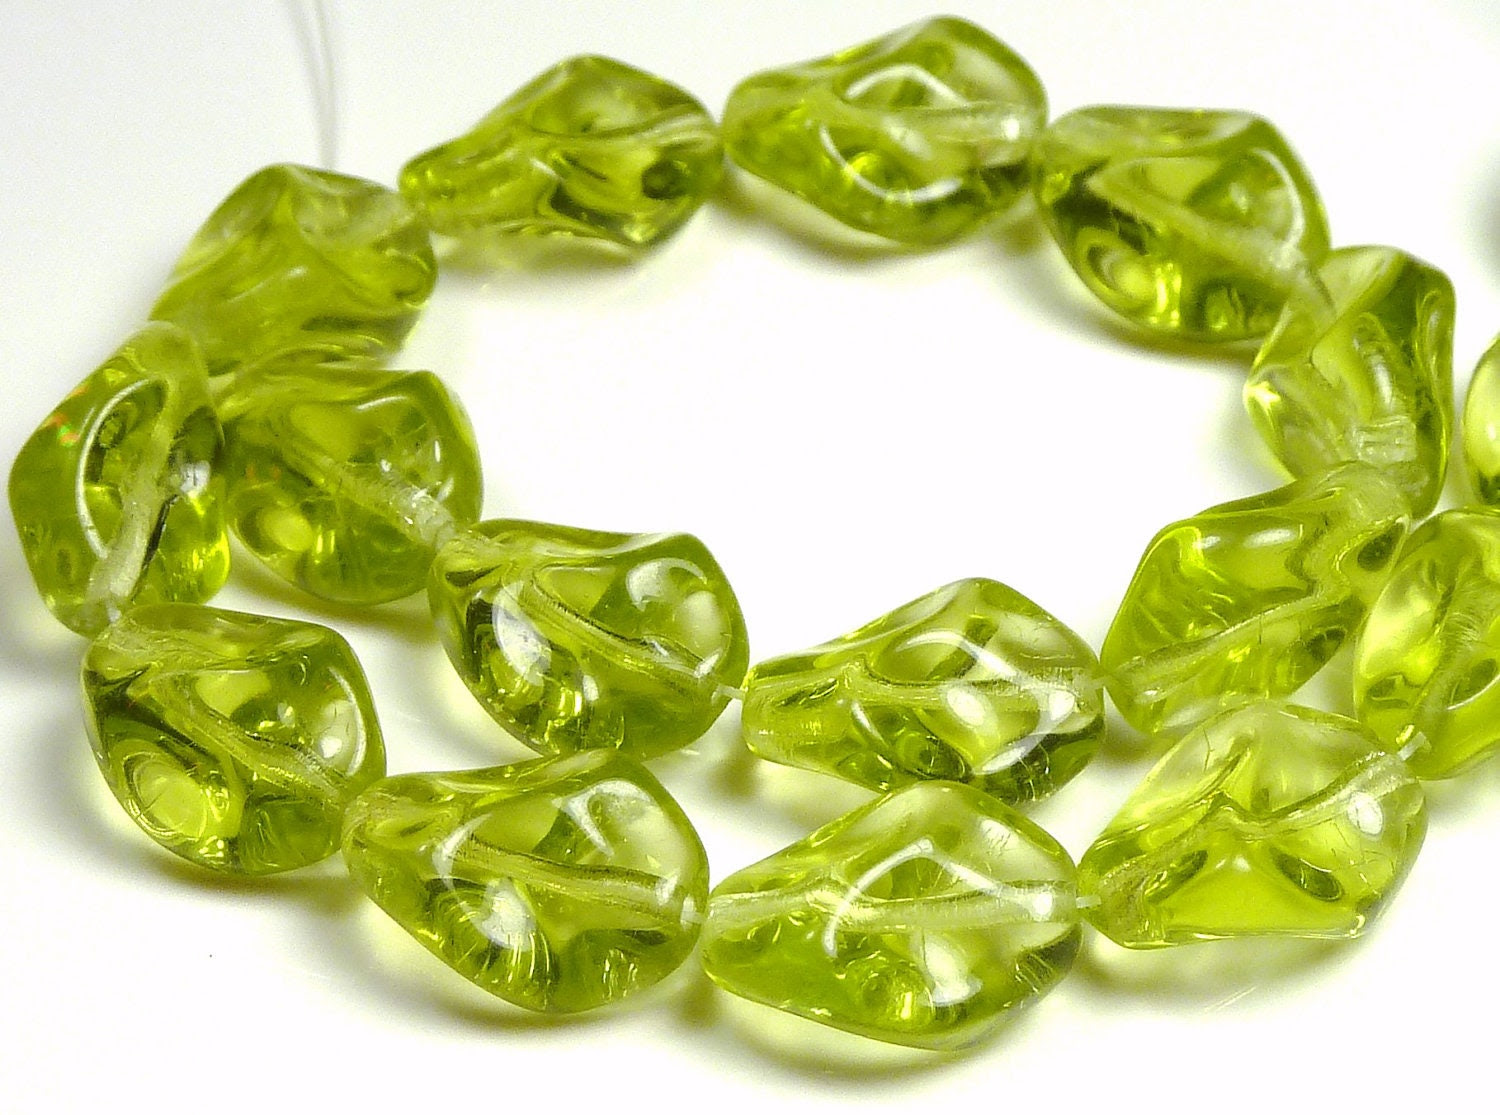 12mm x 9mm Czech Olive Green Pinched Twisted Oval Glass Beads - 7.5 Inch Strand (17) - BlackrockBeads